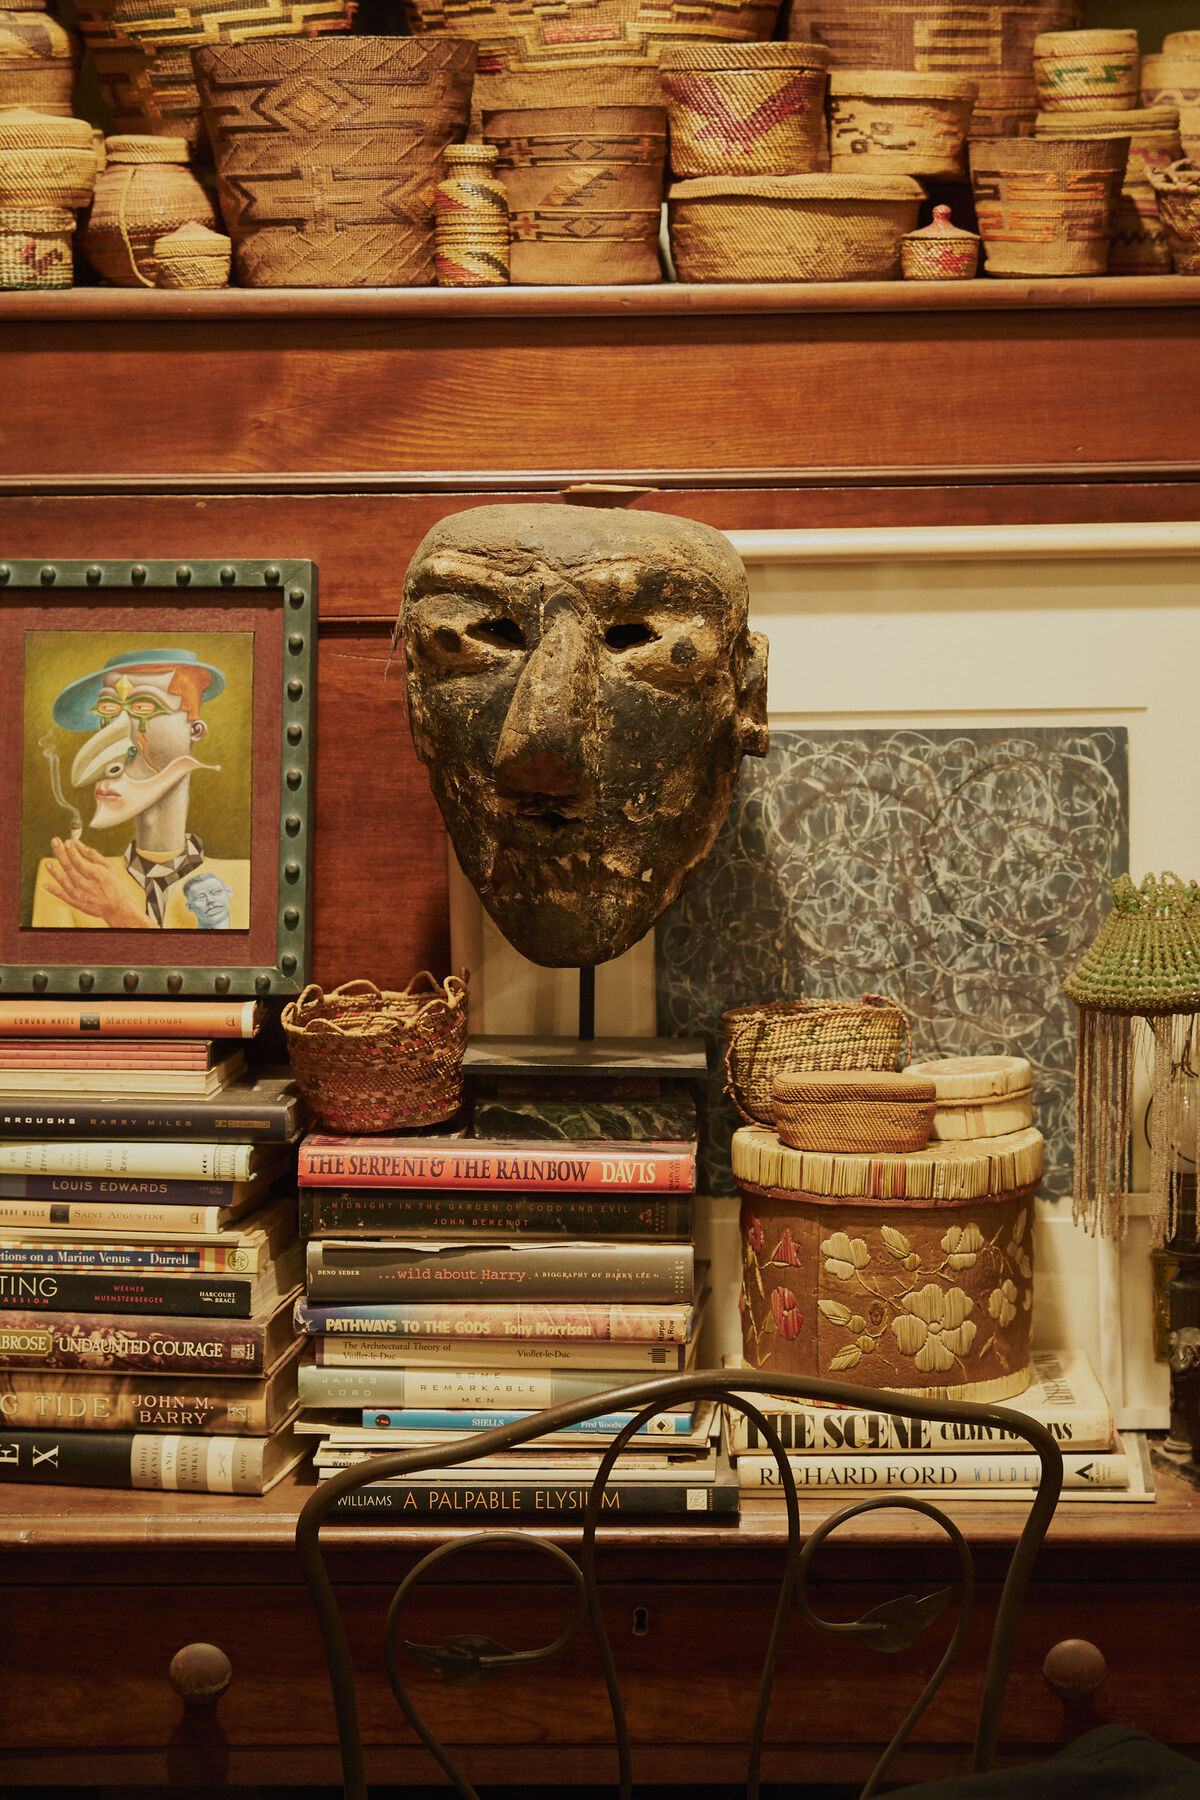 A character mask from the Michoacán state of Mexico rests on a perch of literature in Fagaly's living room, adorned with a collection of baskets by Indigenous peoples from the Northwest Coast, spanning Oregon, Washington, and British Columbia. Photo by Michael Adno for Artsy.